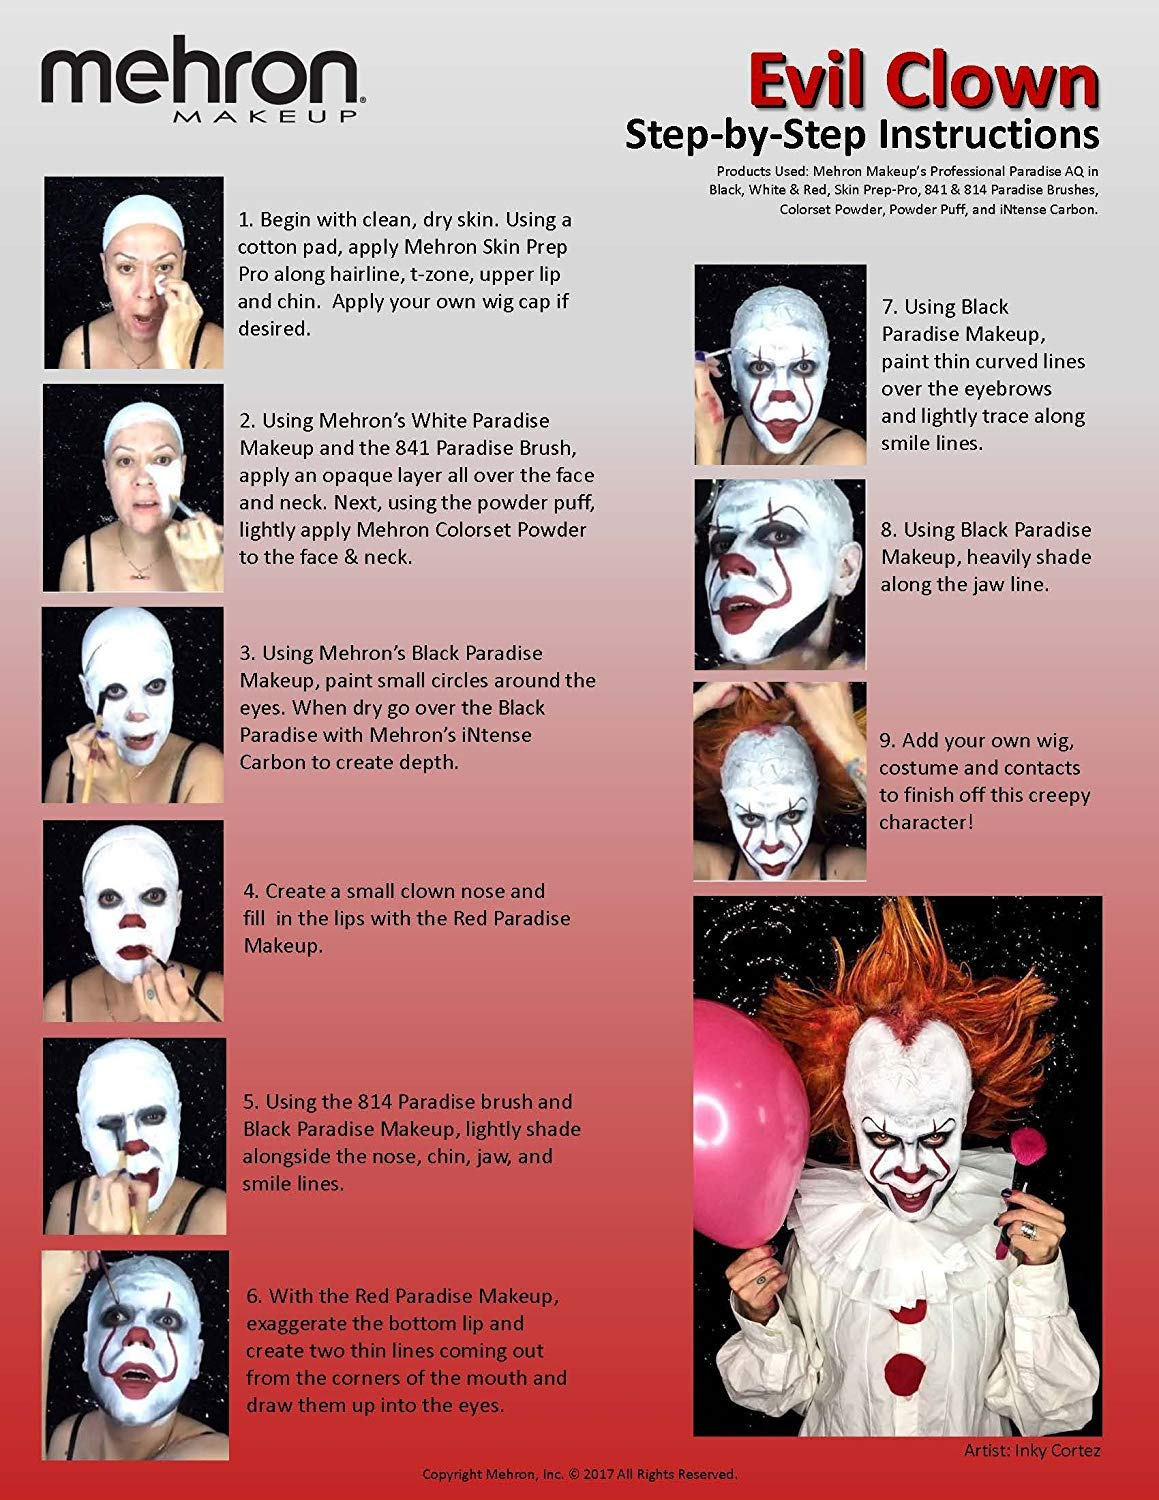 Amazon Com Evil Clown Halloween Makeup Kit Professional Costume Cosmetics For A Creepy It Inspired Look Dress Up Like Pennywise With Pro Quality Paint And Brushes By Mehron Beauty